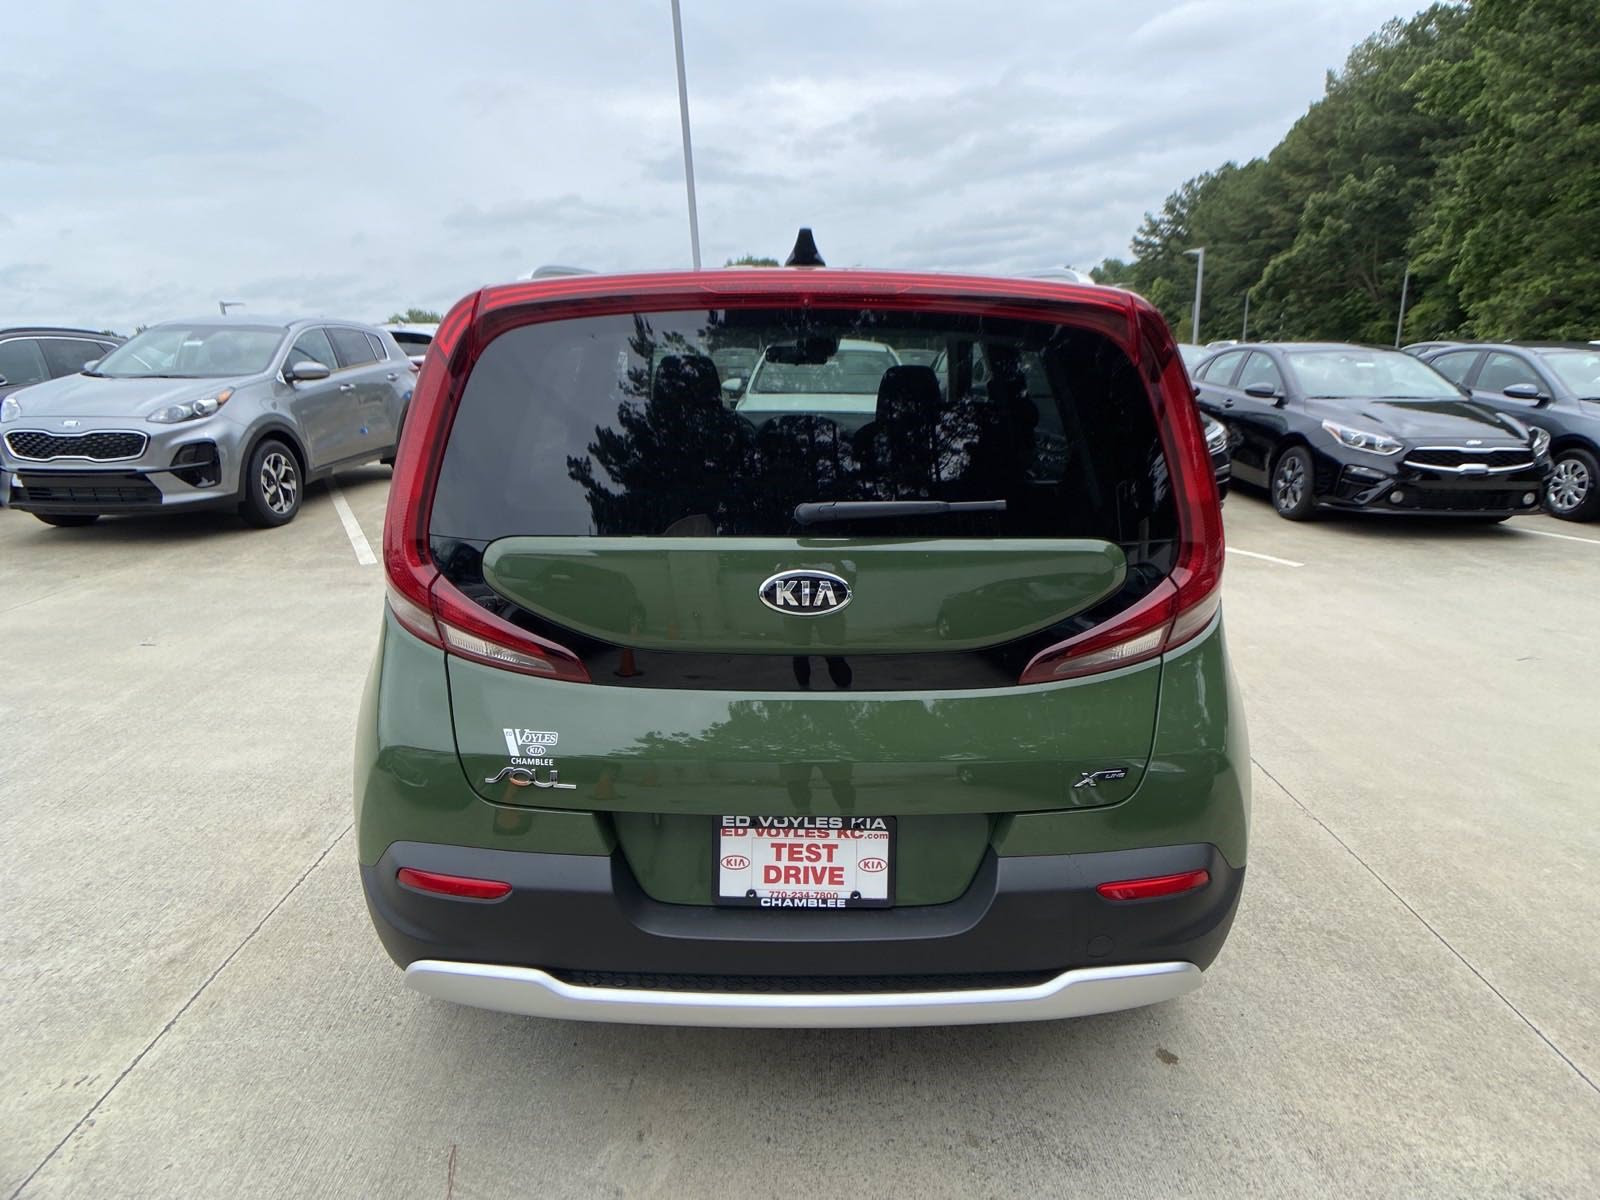 new 2021 kia soul xline hatchback in 608621  ed voyles